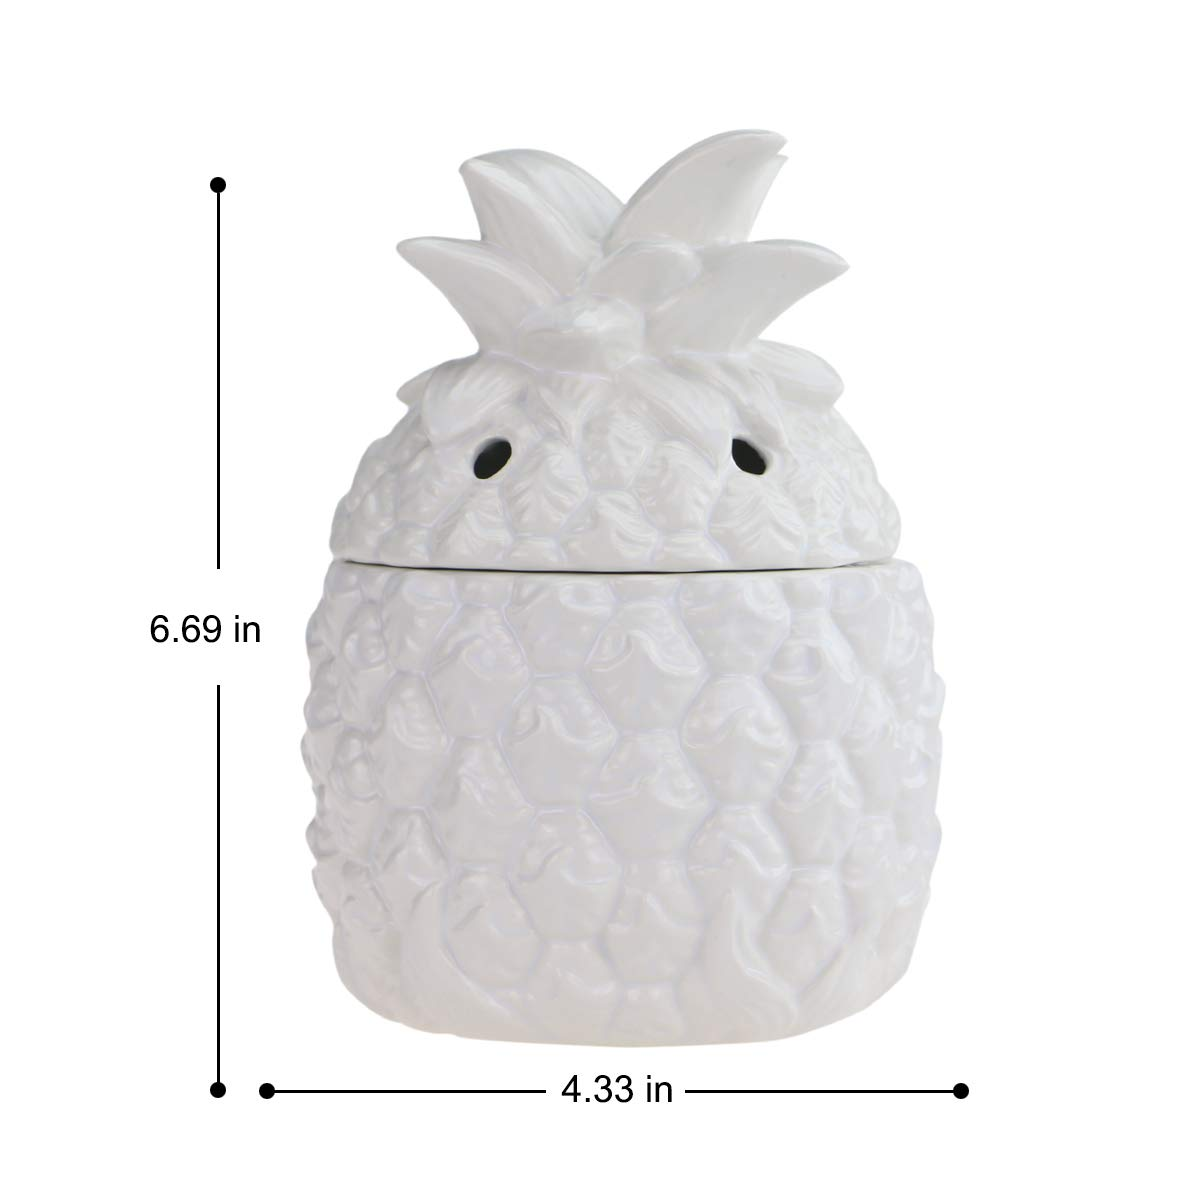 STAR MOON Pluggable Ceramic 3D Form Fragrance Warmer Wax Melter for Home/Dorm/Office No Flame No Smoke No Soot - Embossment Pineapple Pattern by STAR MOON (Image #4)